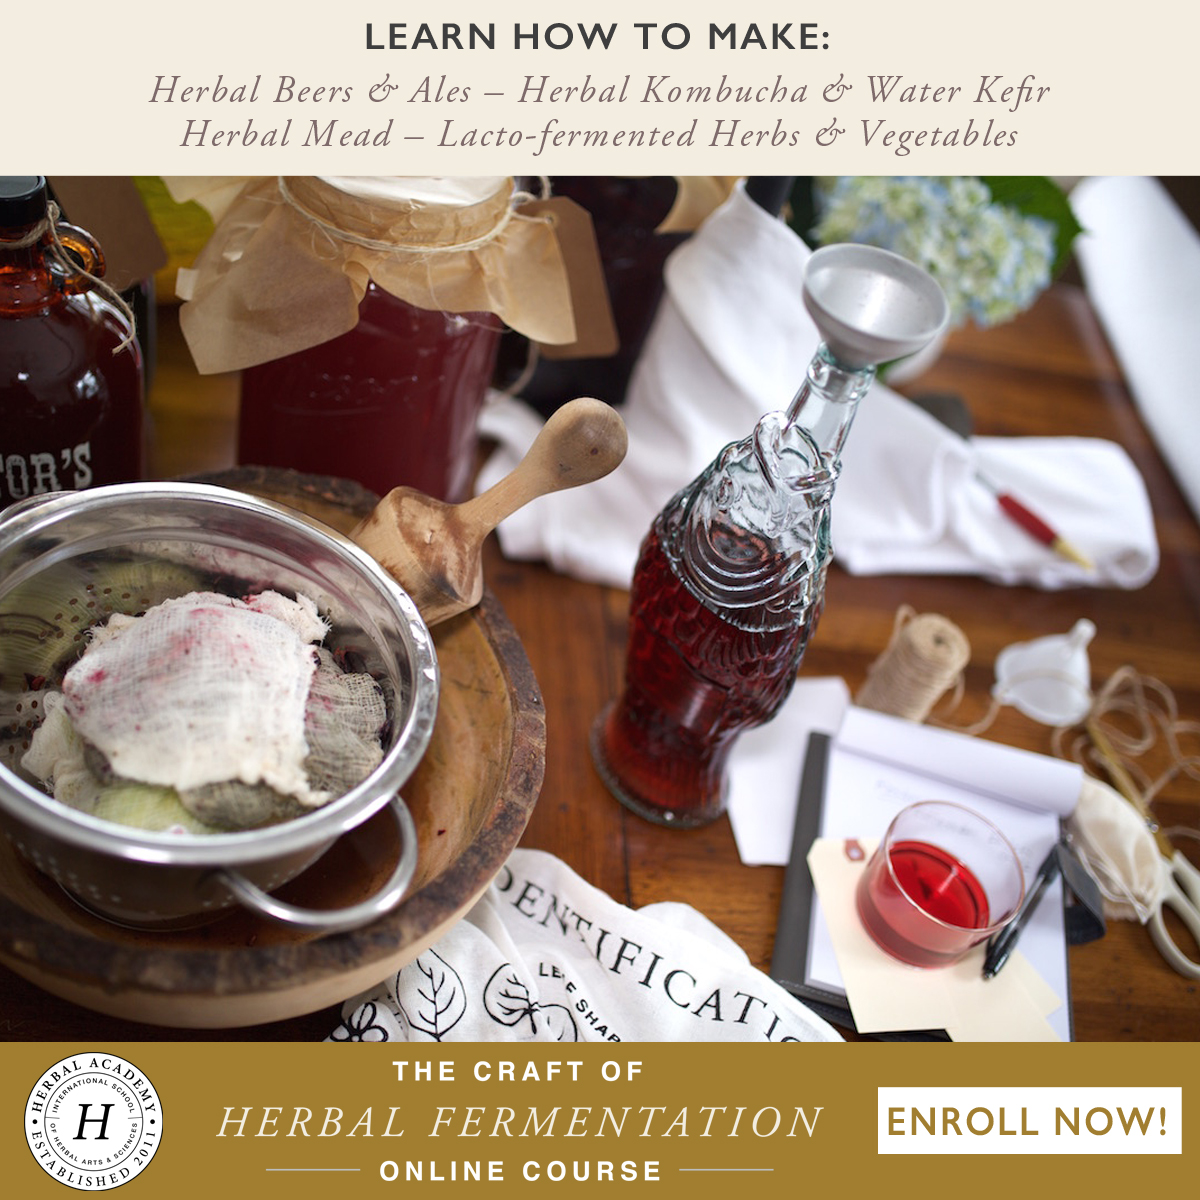 Now Enrolling: The Craft of Herbal Fermentation | Herbal Academy | Join us in our newest short course. Learn to make herbal beer, mead, and wine, herbal kombucha and water kefir, and lacto-fermented foods!